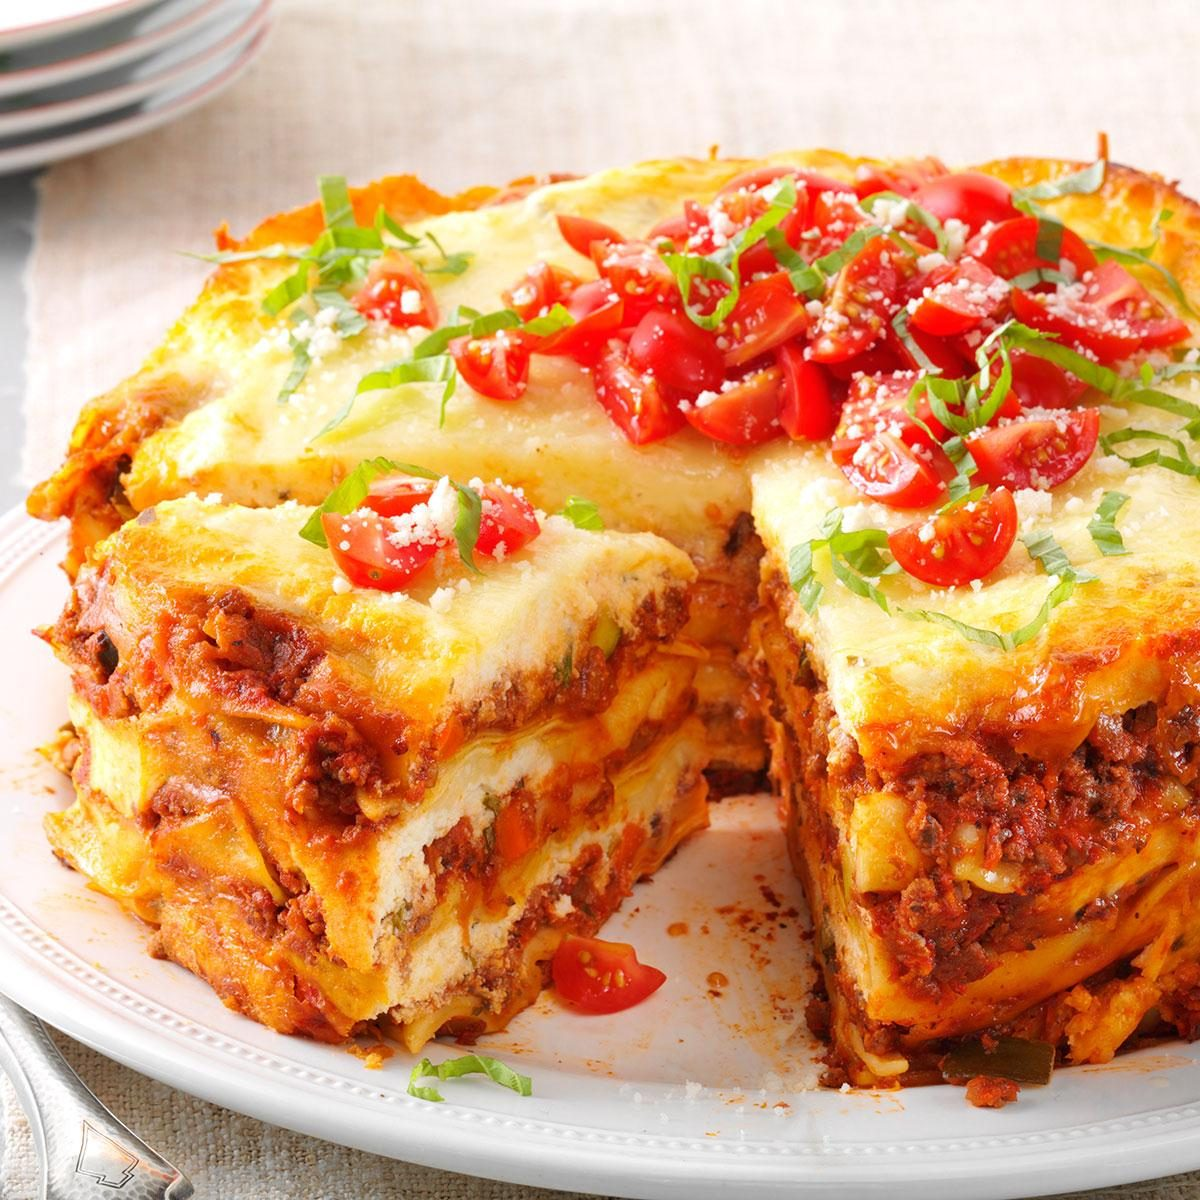 Hearty Slow Cooker Lasagna Recipe | Taste of Home